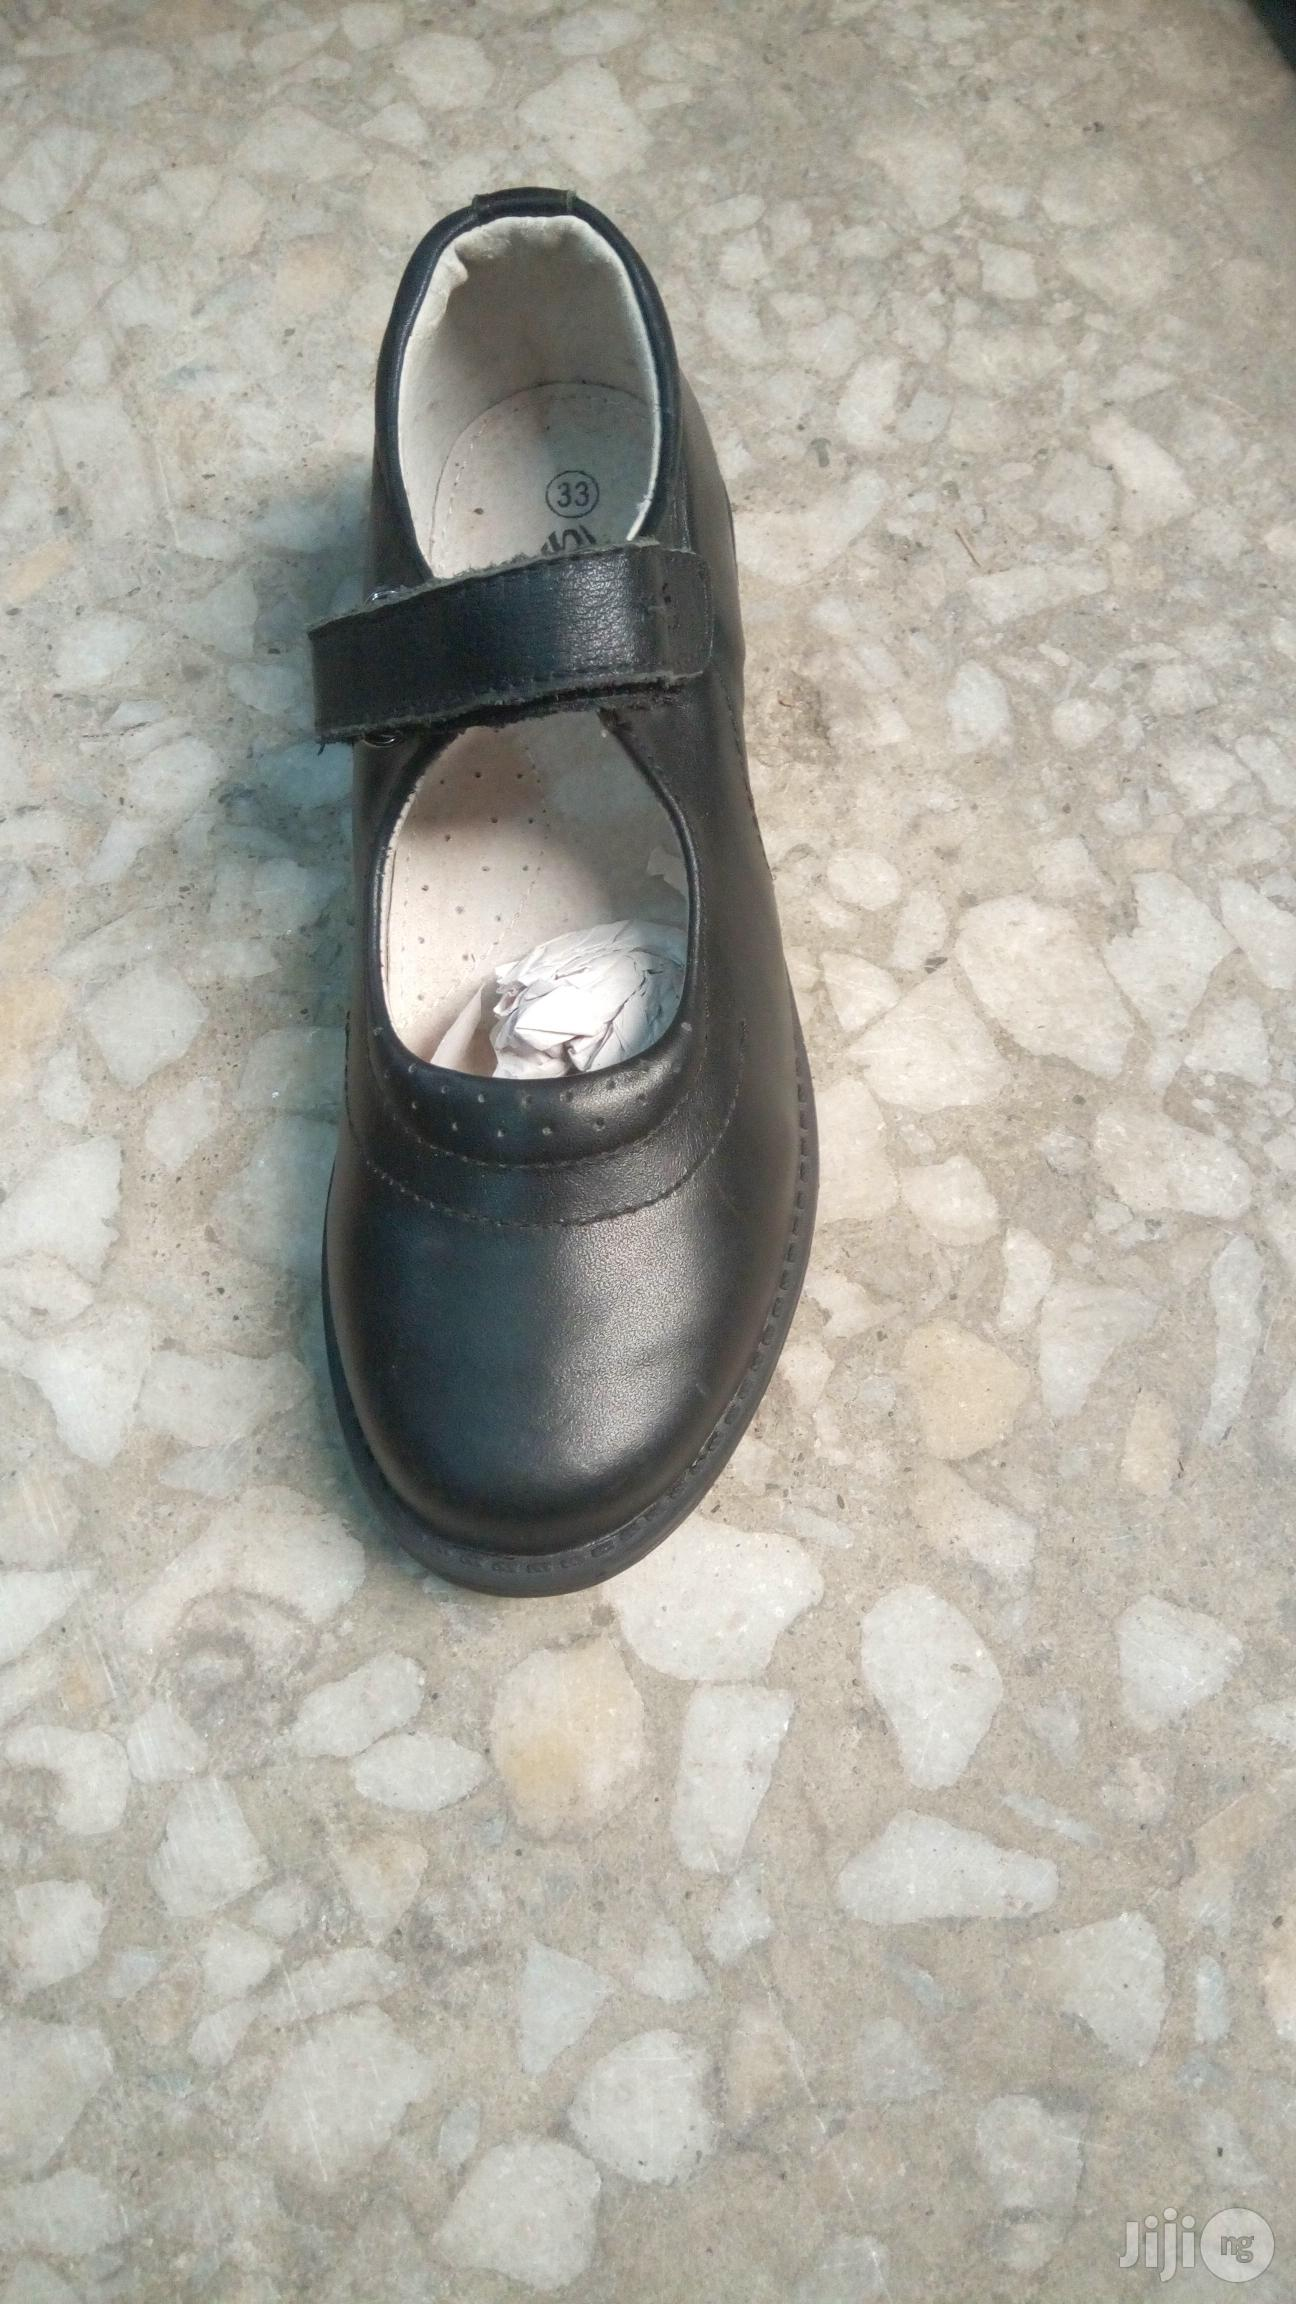 Symphony Girls School Shoe | Children's Shoes for sale in Yaba, Lagos State, Nigeria